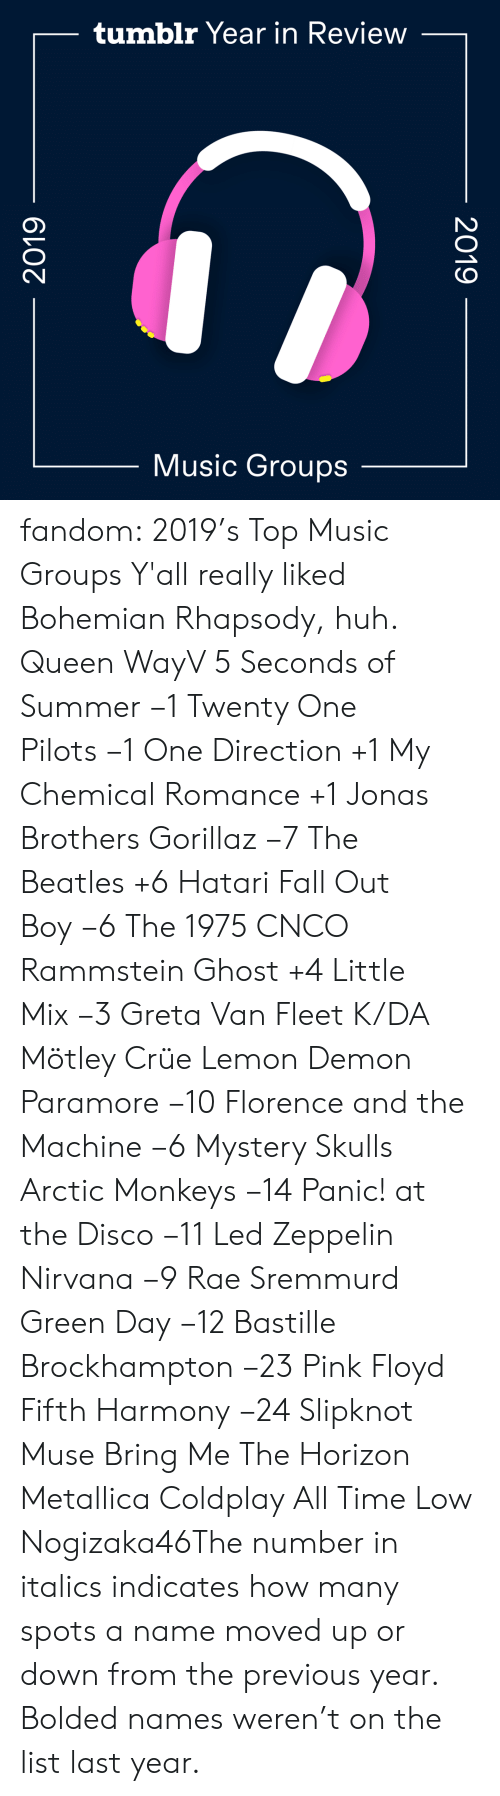 Coldplay, Fall, and Gif: tumblr Year in Review  Music Groups  2019  2019 fandom:  2019's Top Music Groups  Y'all really liked Bohemian Rhapsody, huh.  Queen  WayV  5 Seconds of Summer −1  Twenty One Pilots −1  One Direction +1  My Chemical Romance +1  Jonas Brothers  Gorillaz −7  The Beatles +6  Hatari  Fall Out Boy −6  The 1975  CNCO  Rammstein  Ghost +4  Little Mix −3  Greta Van Fleet  K/DA  Mötley Crüe  Lemon Demon  Paramore −10  Florence and the Machine −6  Mystery Skulls  Arctic Monkeys −14  Panic! at the Disco −11  Led Zeppelin   Nirvana −9  Rae Sremmurd  Green Day −12  Bastille  Brockhampton −23  Pink Floyd  Fifth Harmony −24  Slipknot  Muse  Bring Me The Horizon  Metallica  Coldplay  All Time Low  Nogizaka46The number in italics indicates how many spots a name moved up or down from the previous year. Bolded names weren't on the list last year.